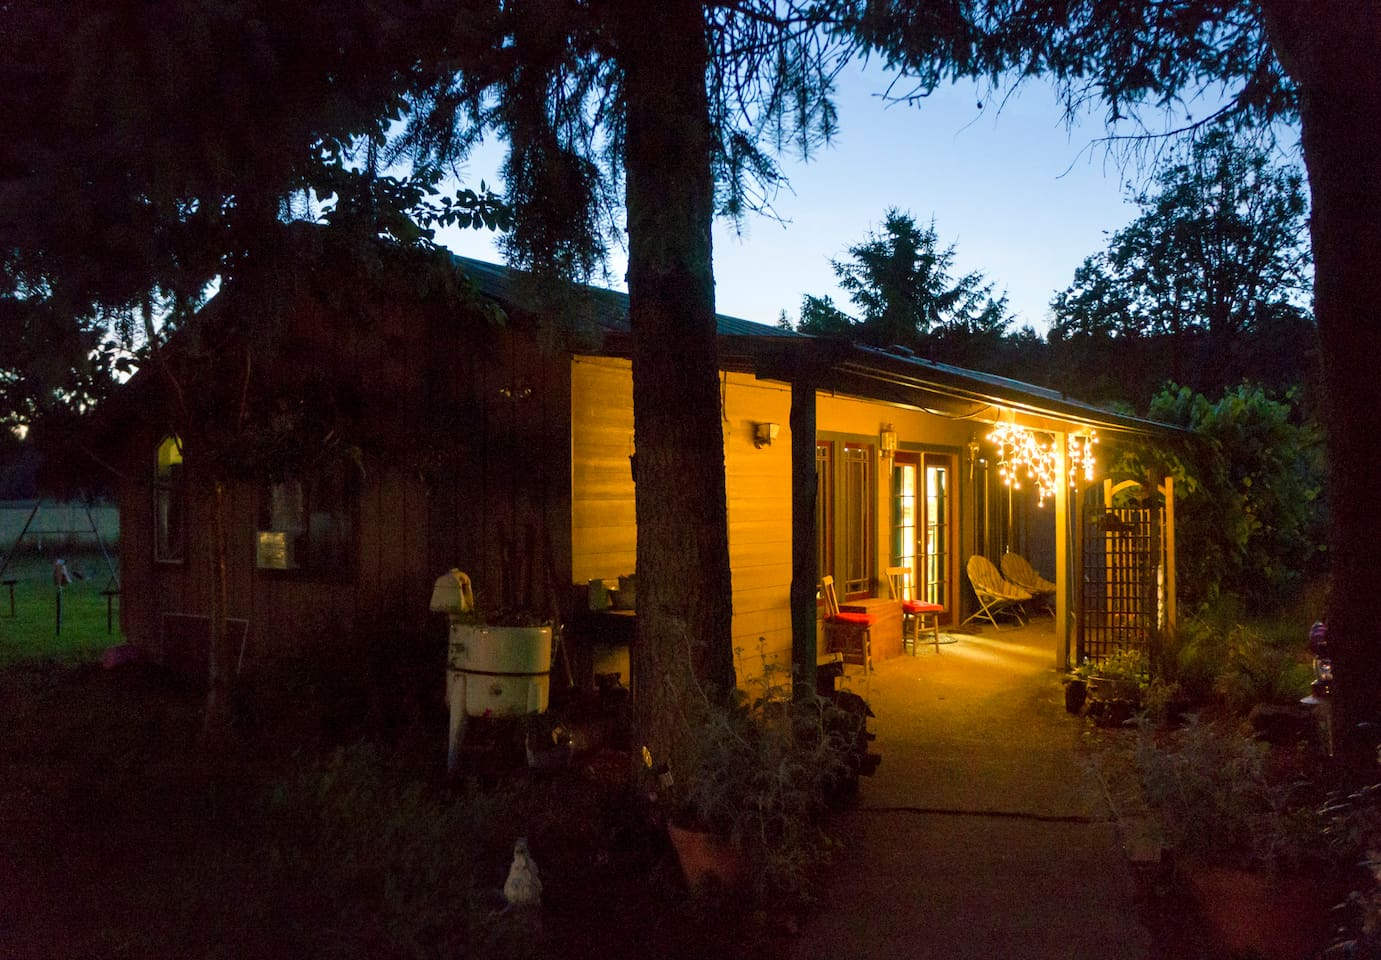 The warm glow of the Calapooia Farm House as the crickets chirp and the frogs sing their lullaby.